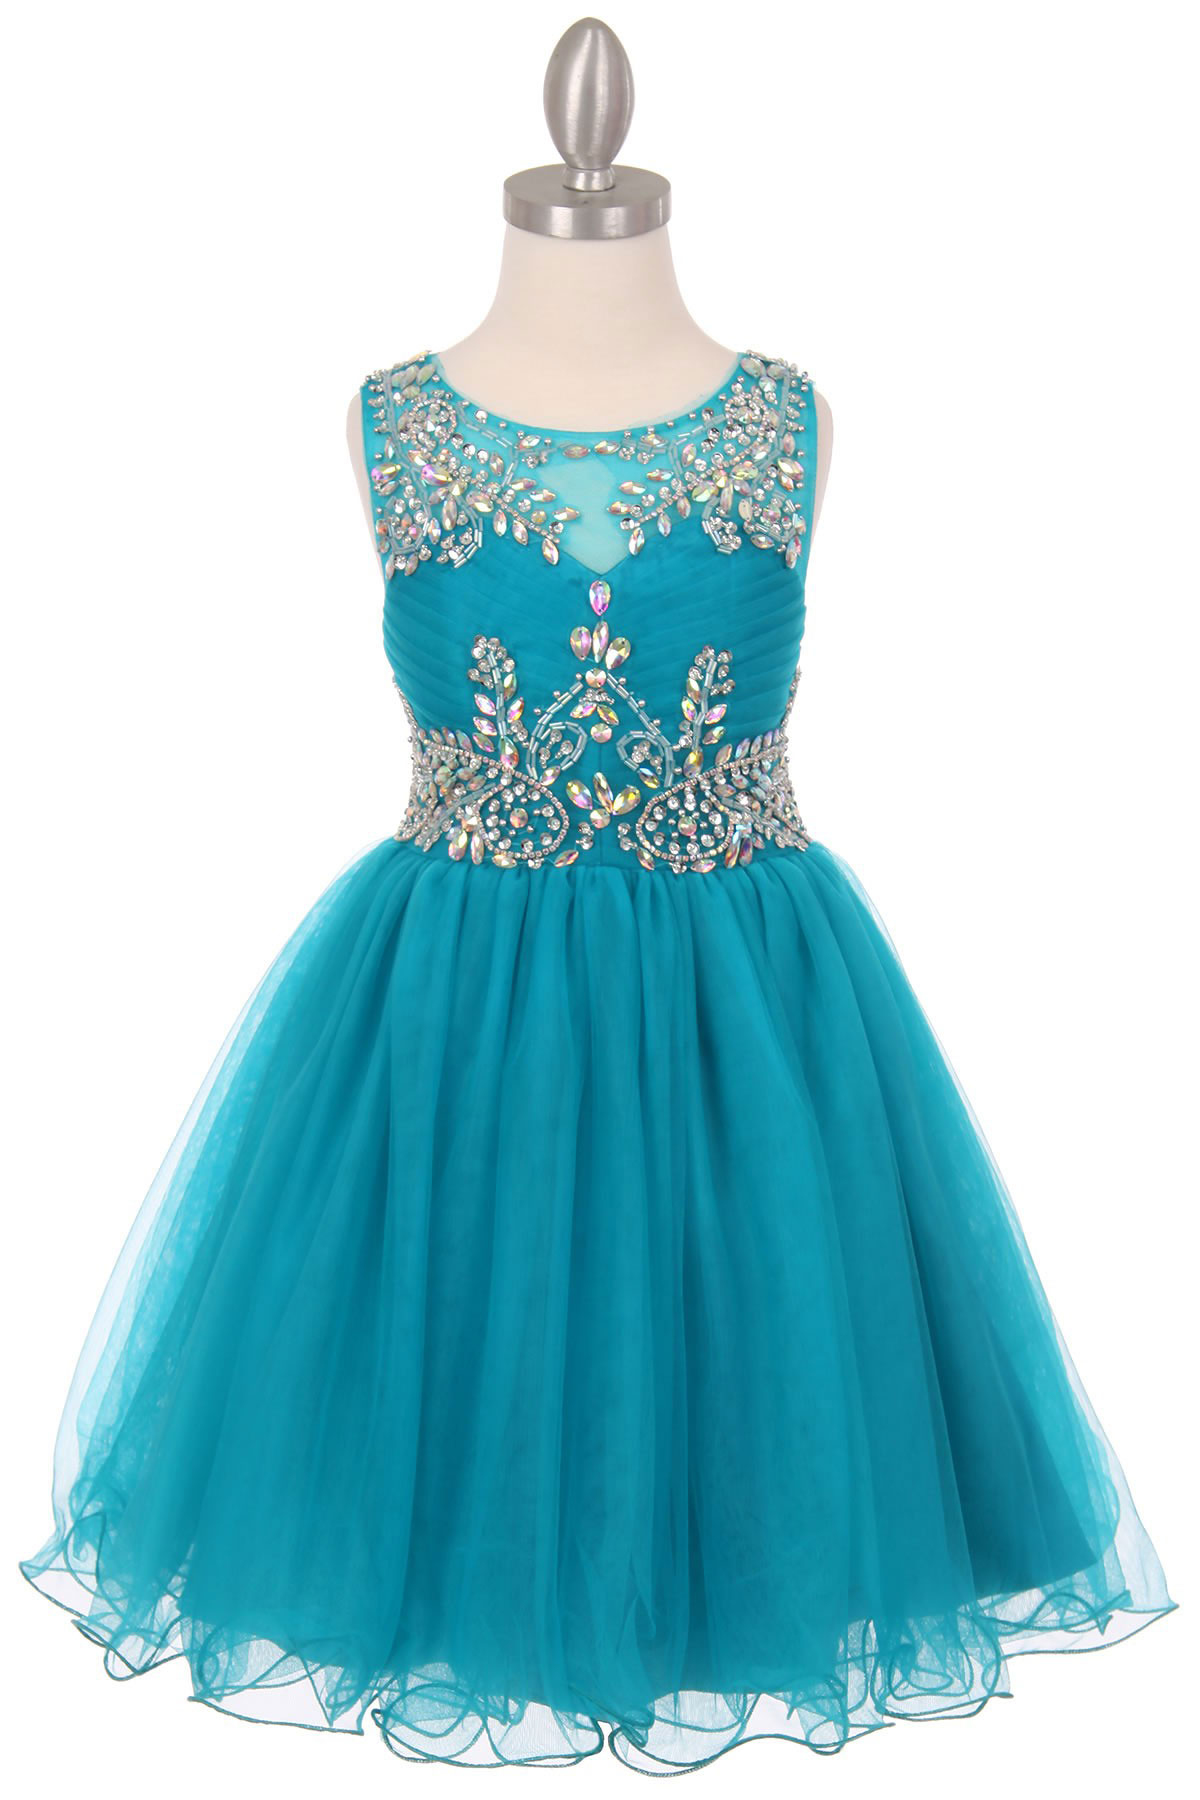 Cc 65007tl Girls Dress Style 65007 Teal Sleeveless